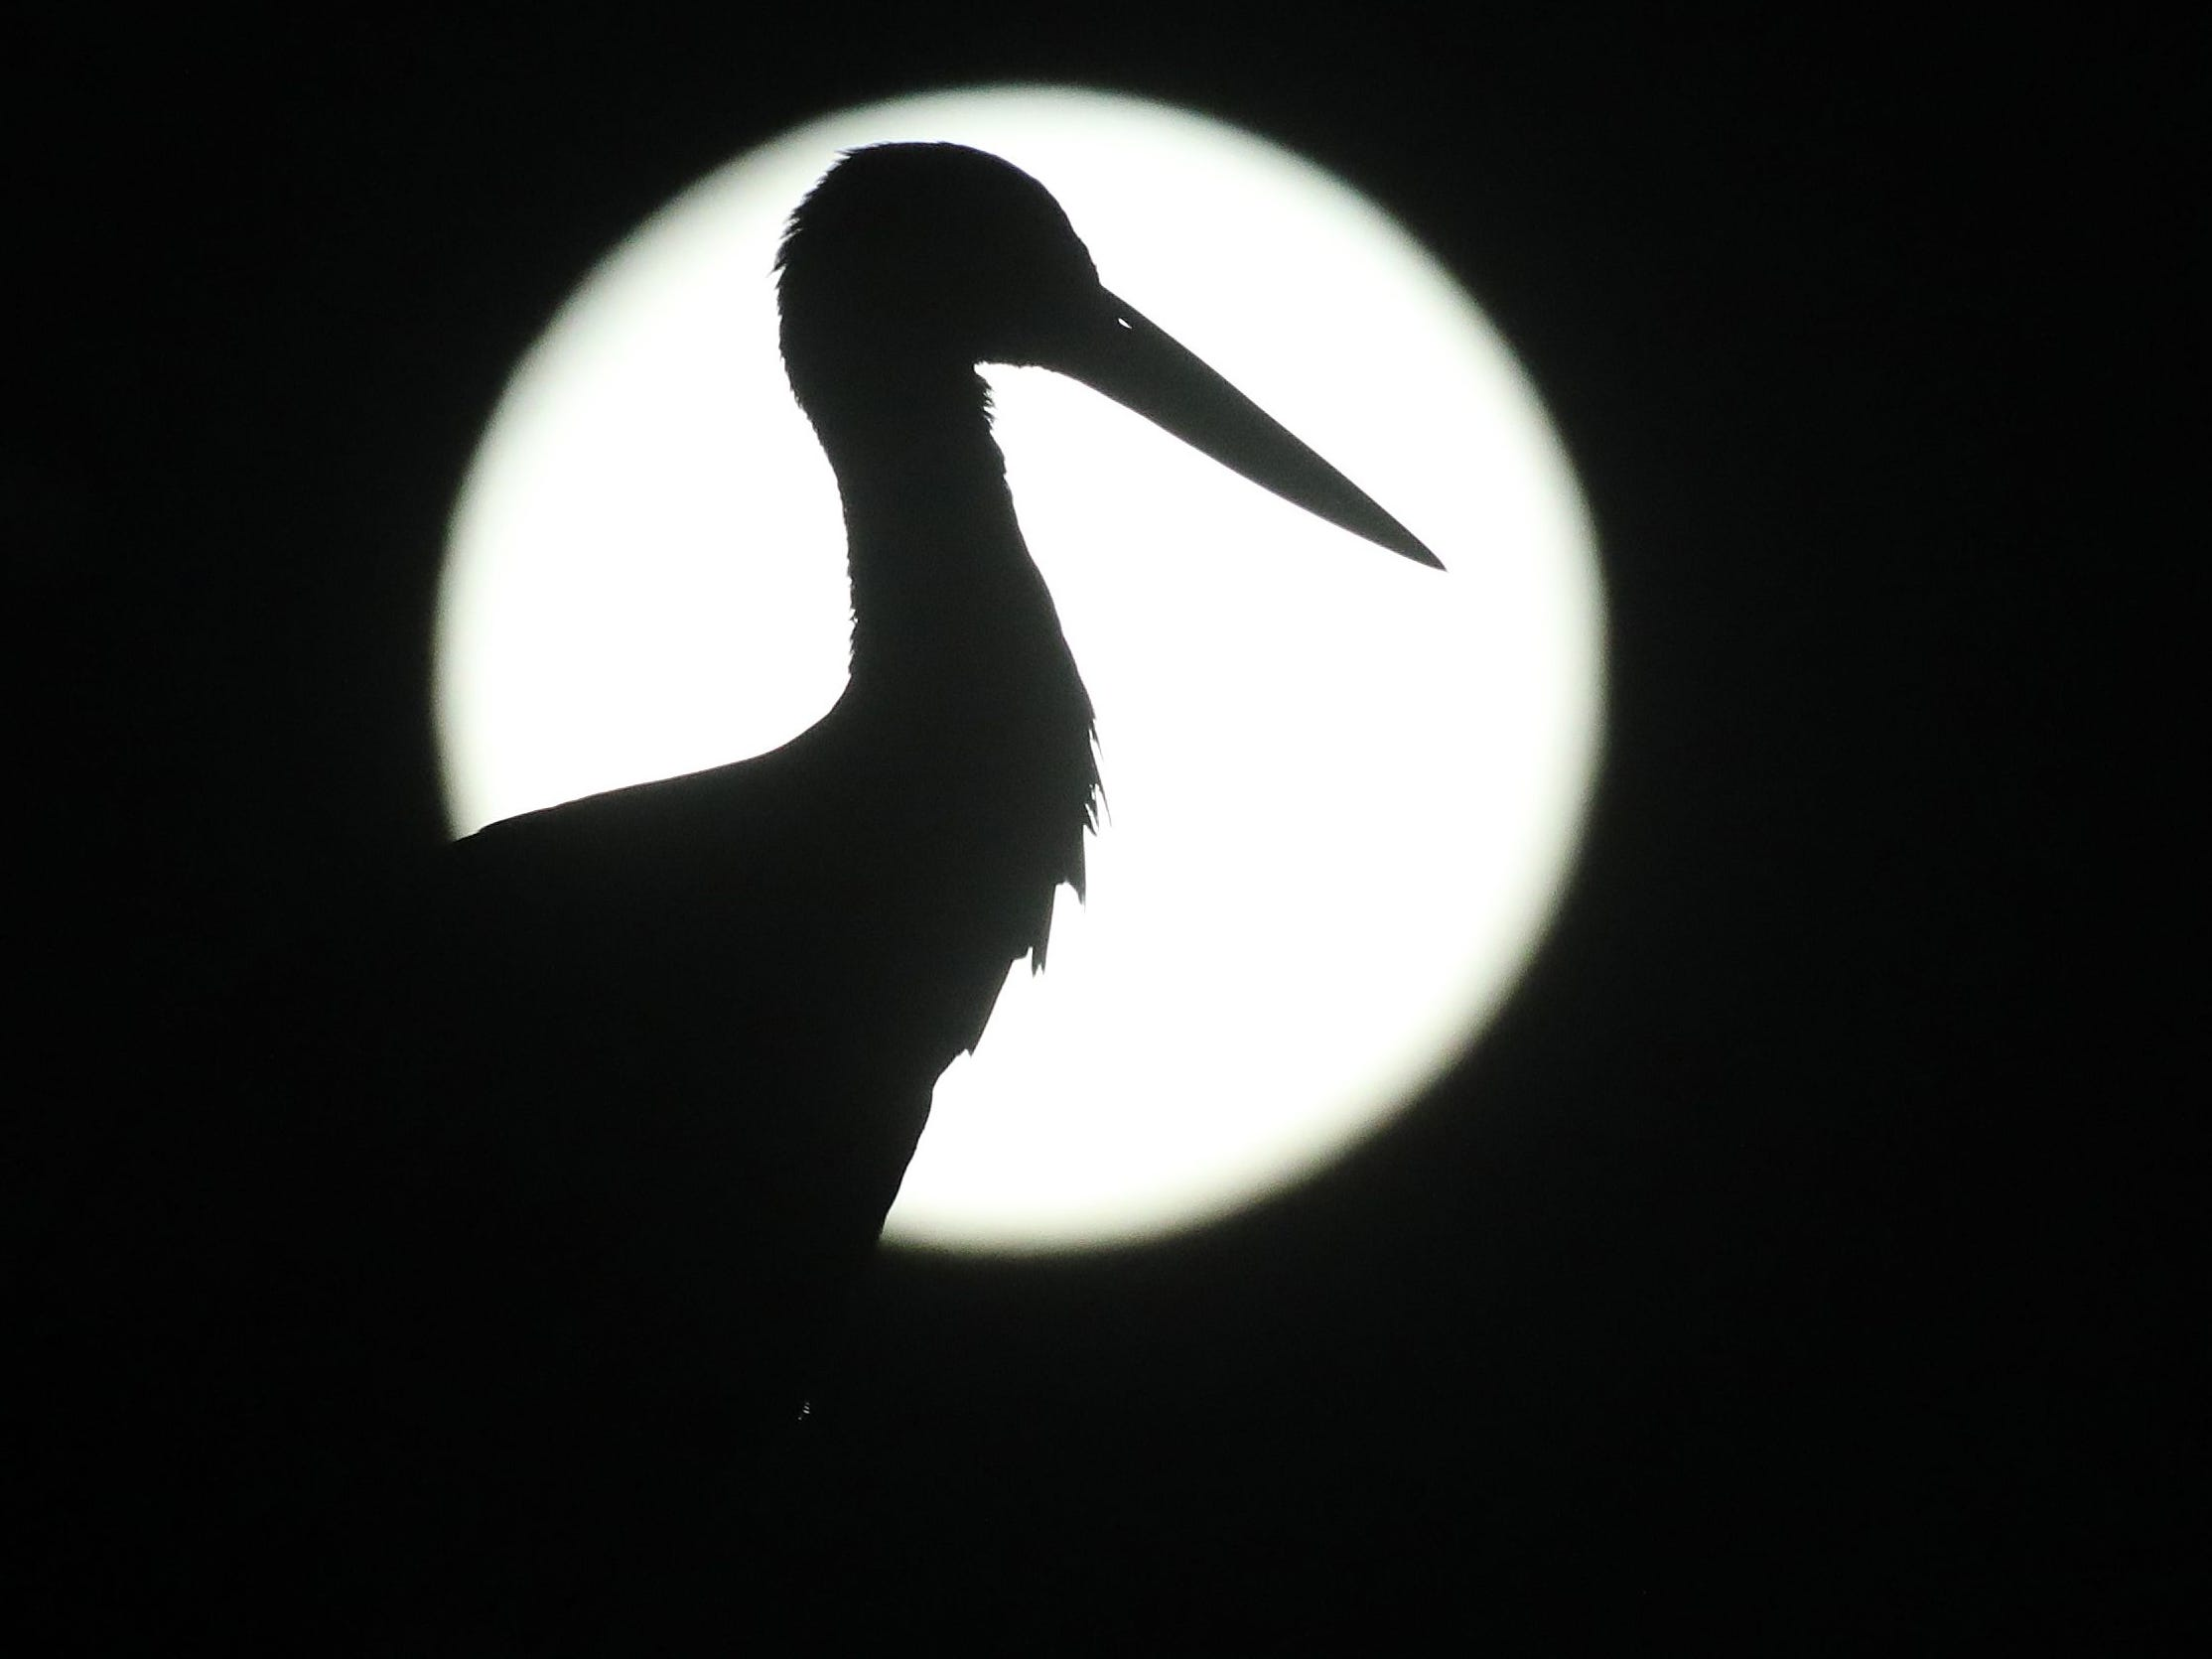 A stork standing on its nest silhouettes against the full moon on early March 21, 2019 in Riedlingen-Zell near Reutlingen, southern Germany. (Photo by Thomas Warnack / dpa / AFP) / Germany OUTTHOMAS WARNACK/AFP/Getty Images ORIG FILE ID: 587261409